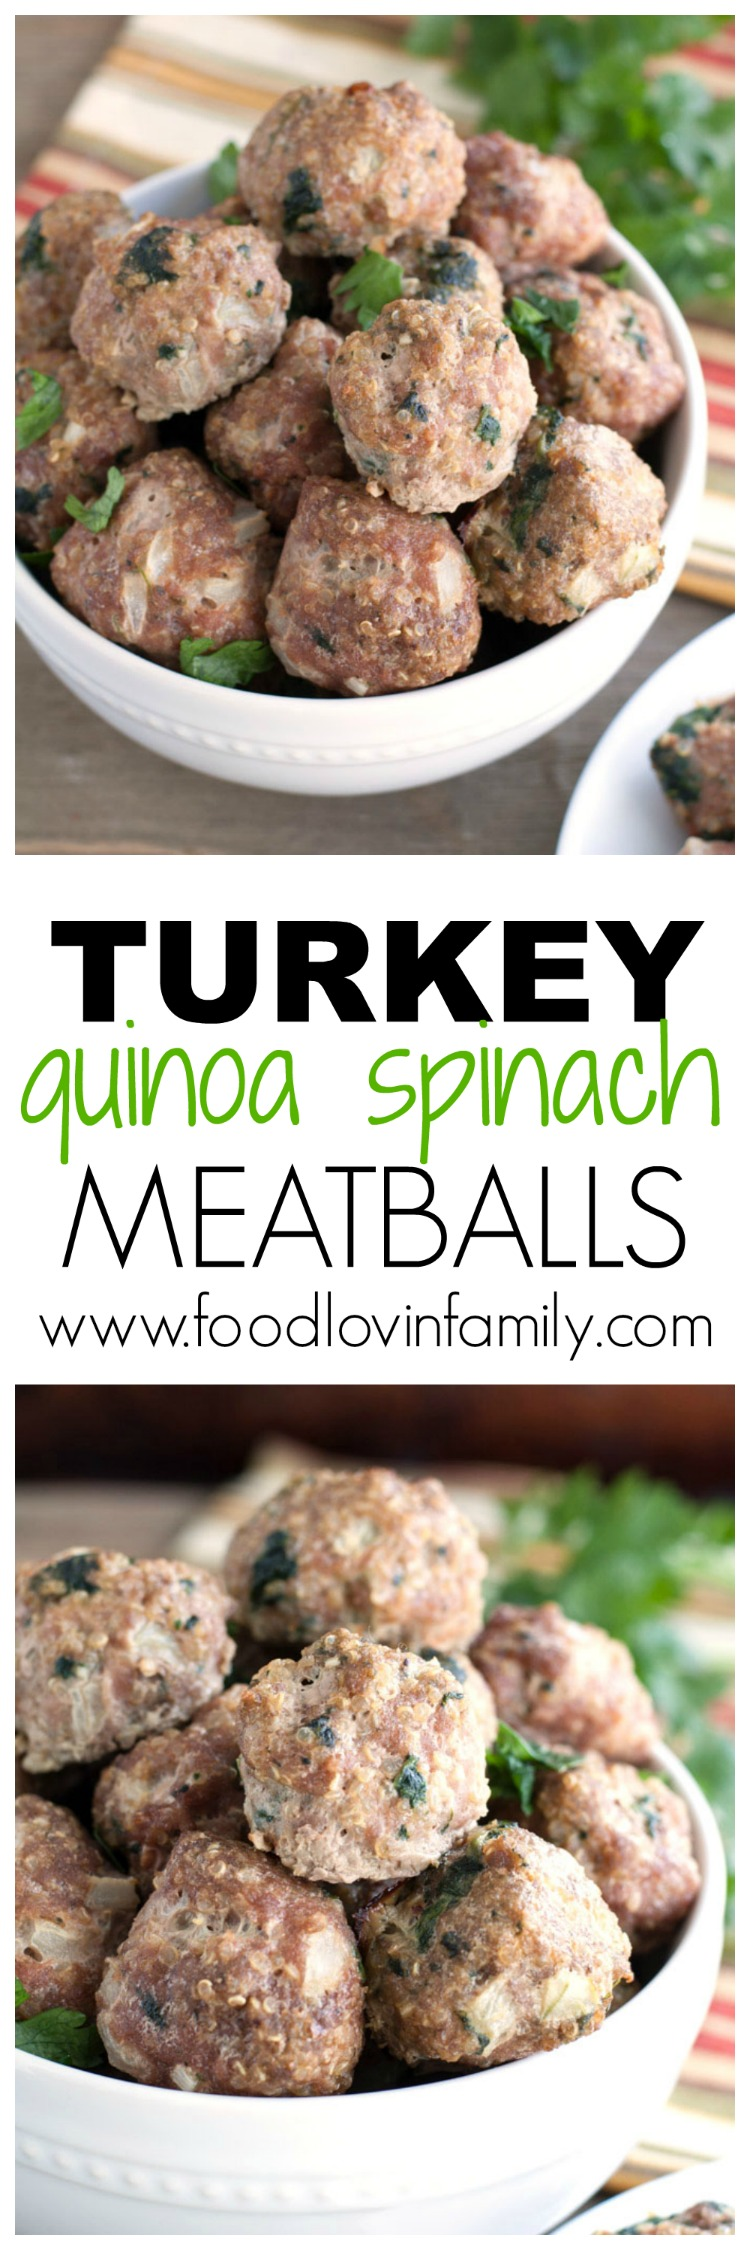 Turkey Quinoa Spinach Meatballs PIN